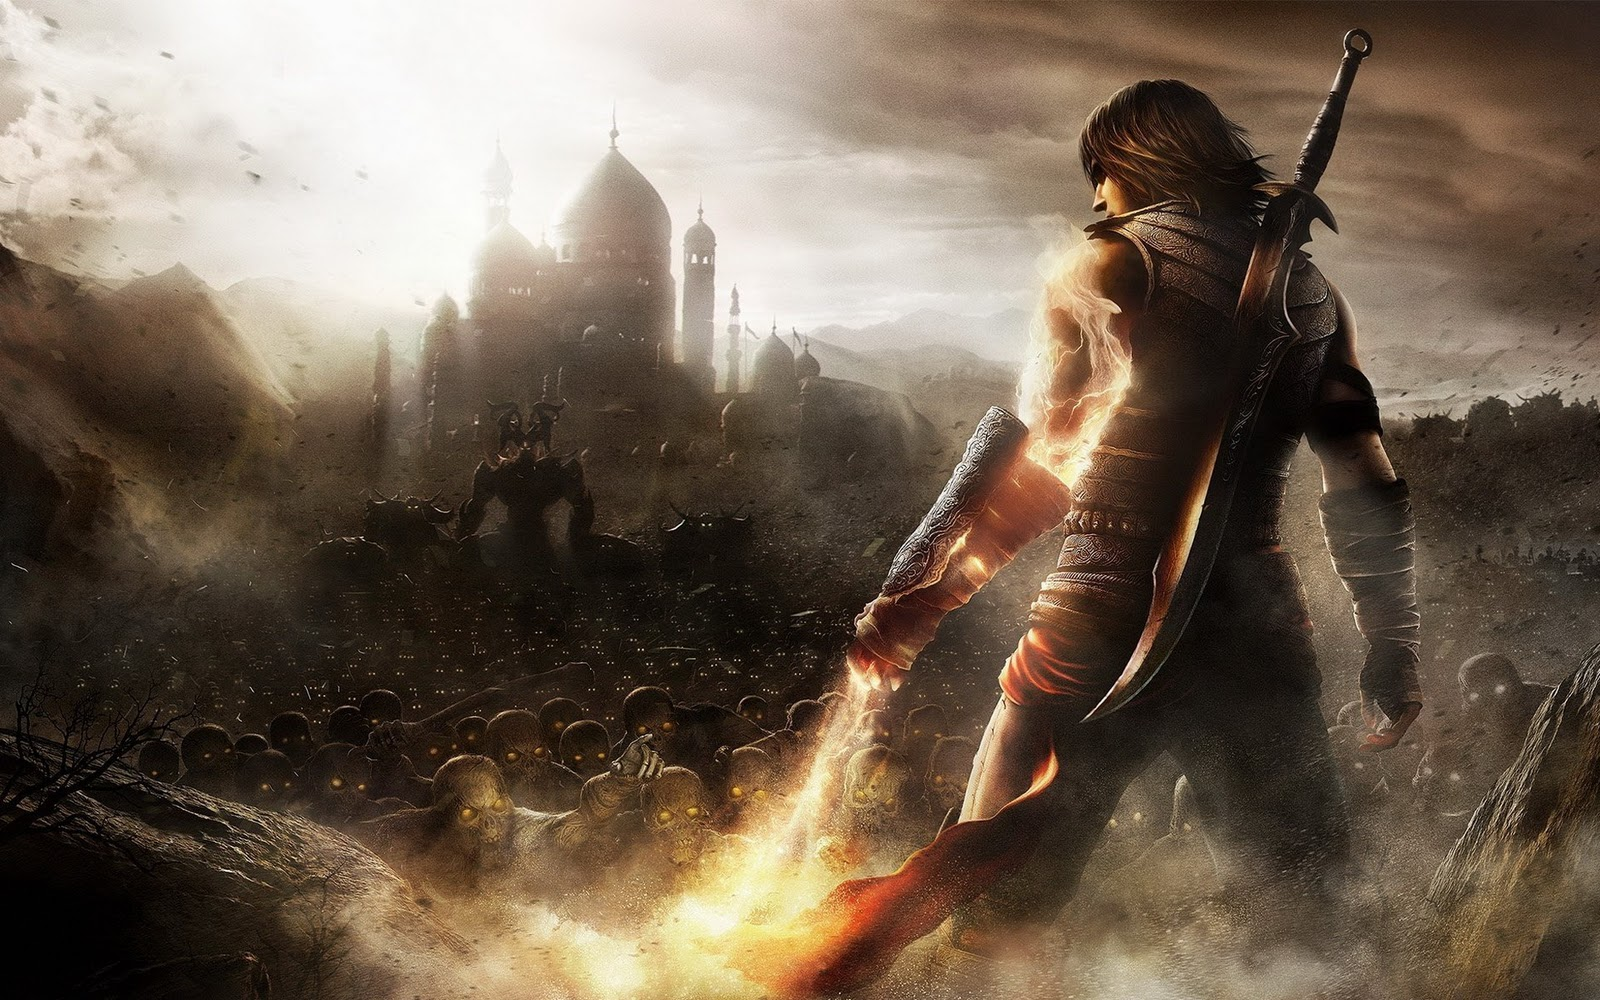 prince of persia art wallpapers - 37 Prince Of Persia HD Wallpapers Backgrounds